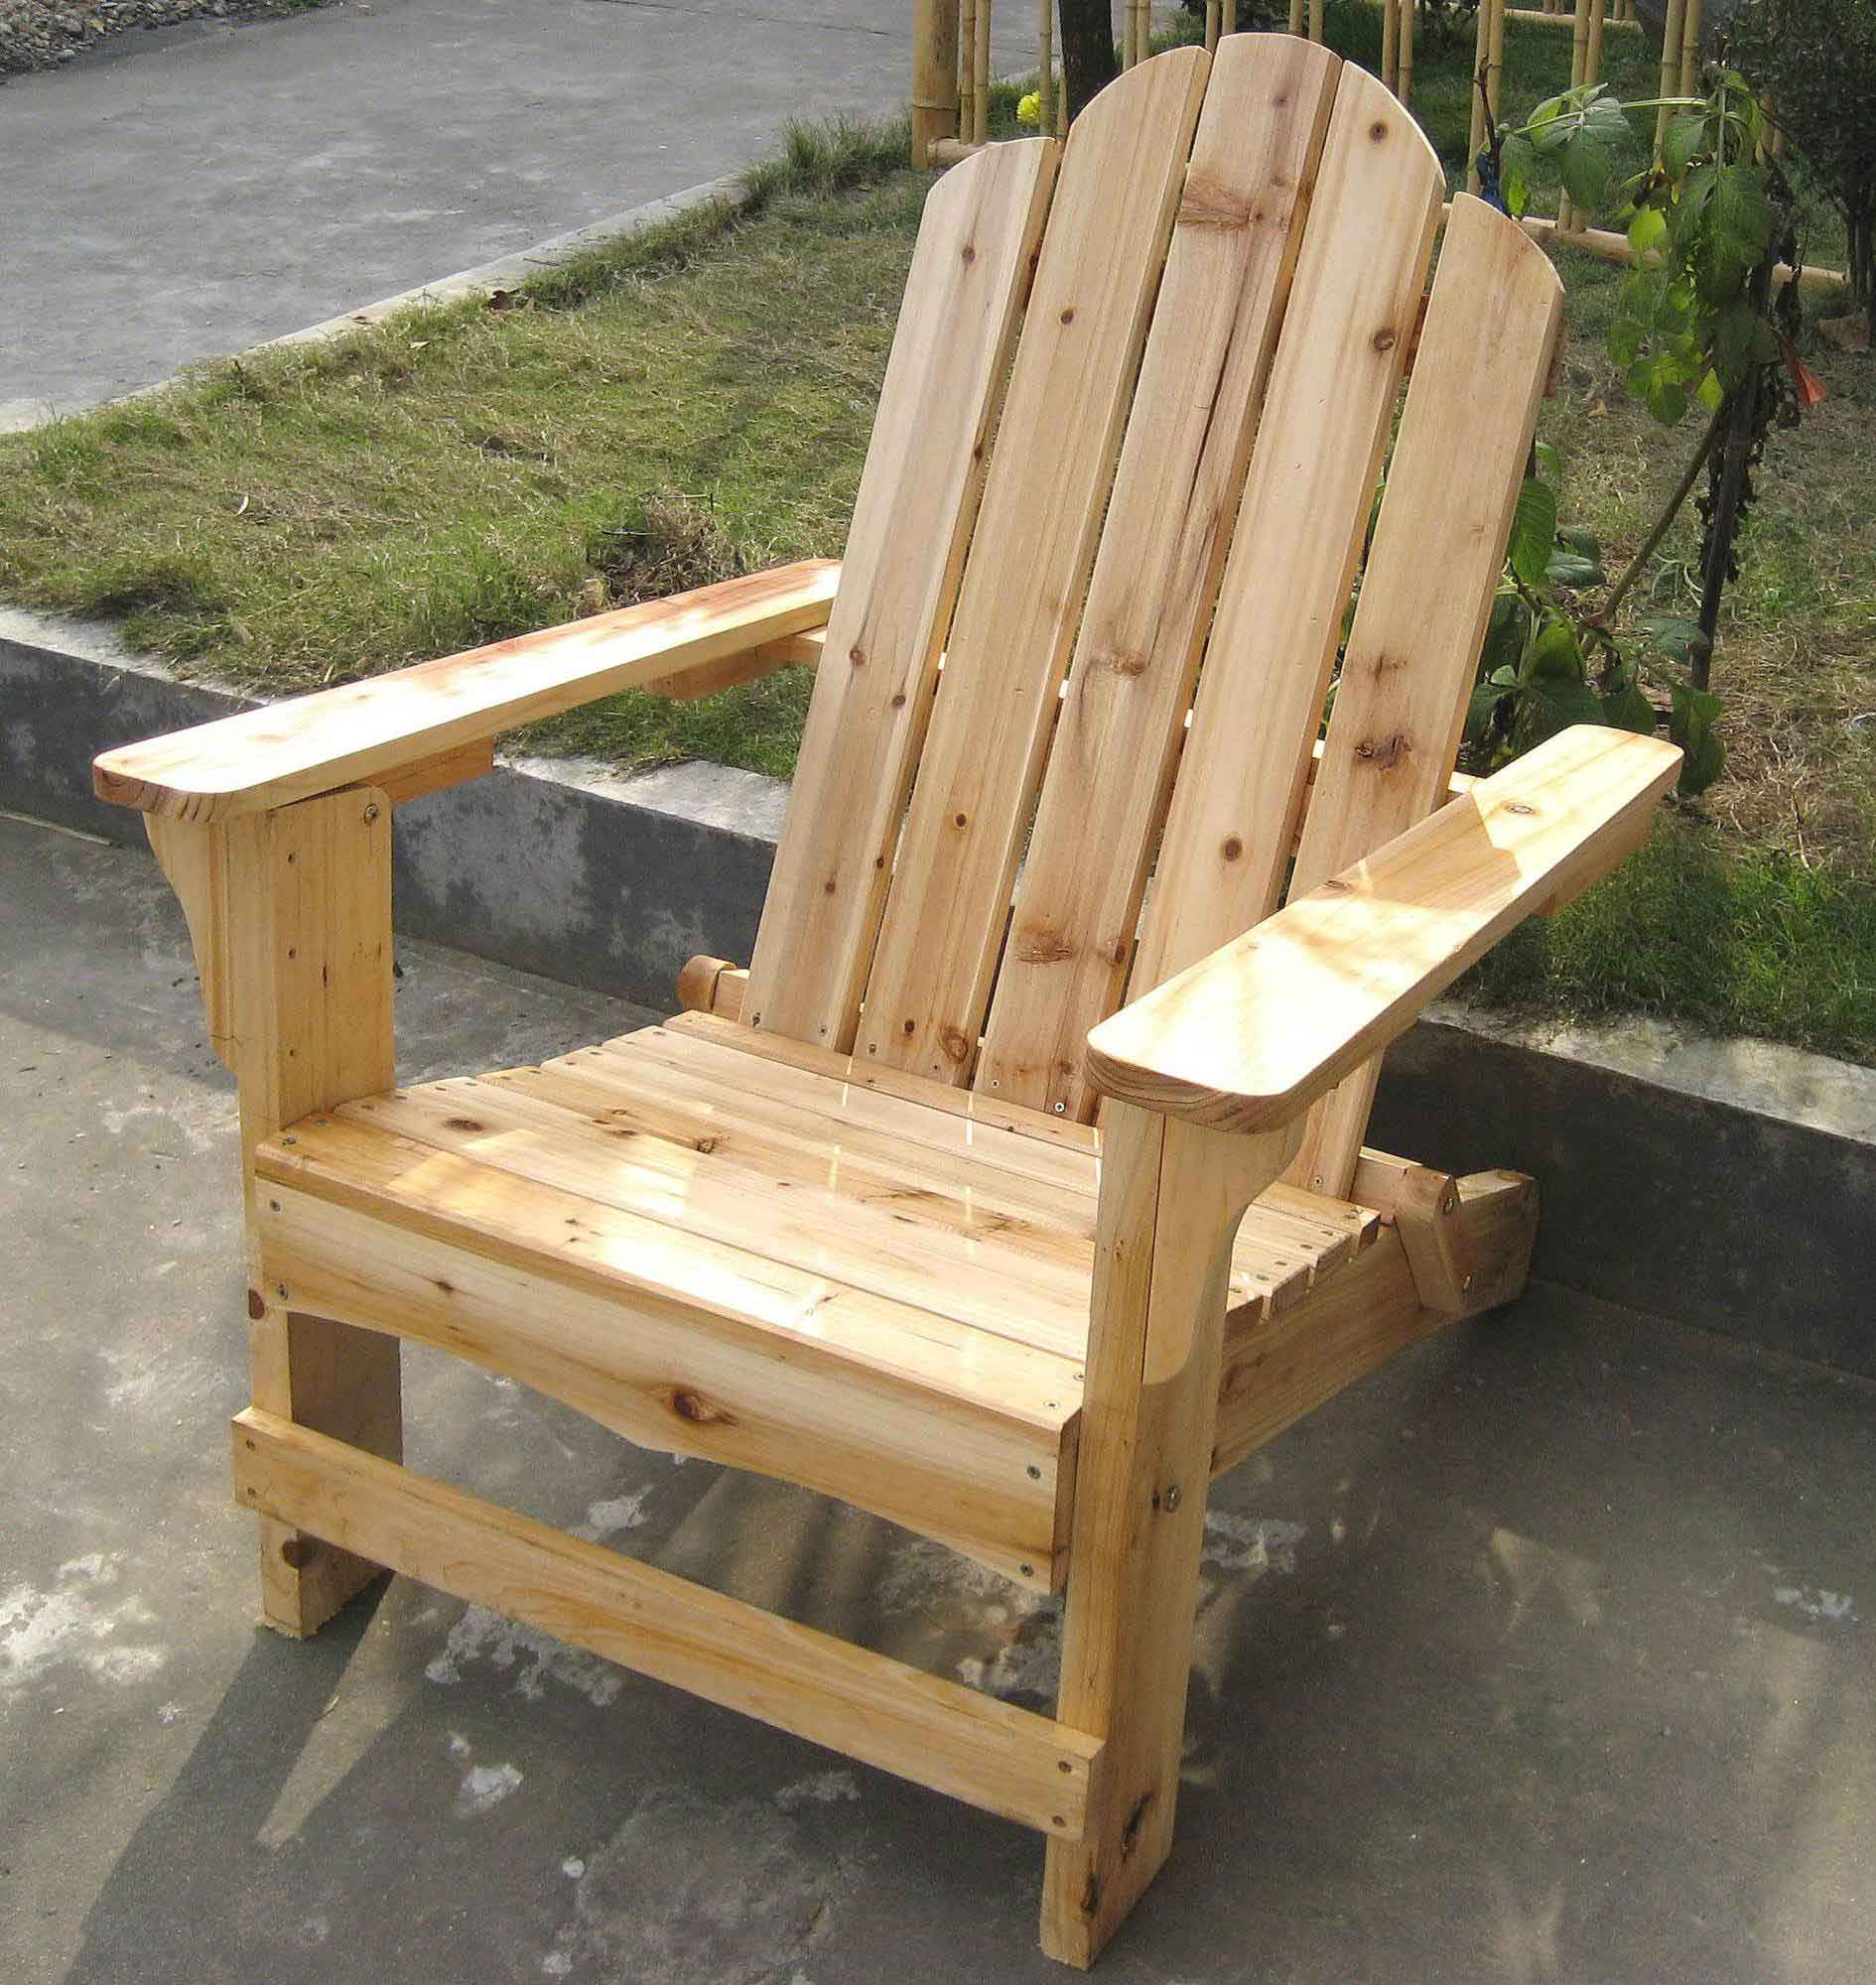 Wooden Outdoor Furniture black girls s blog